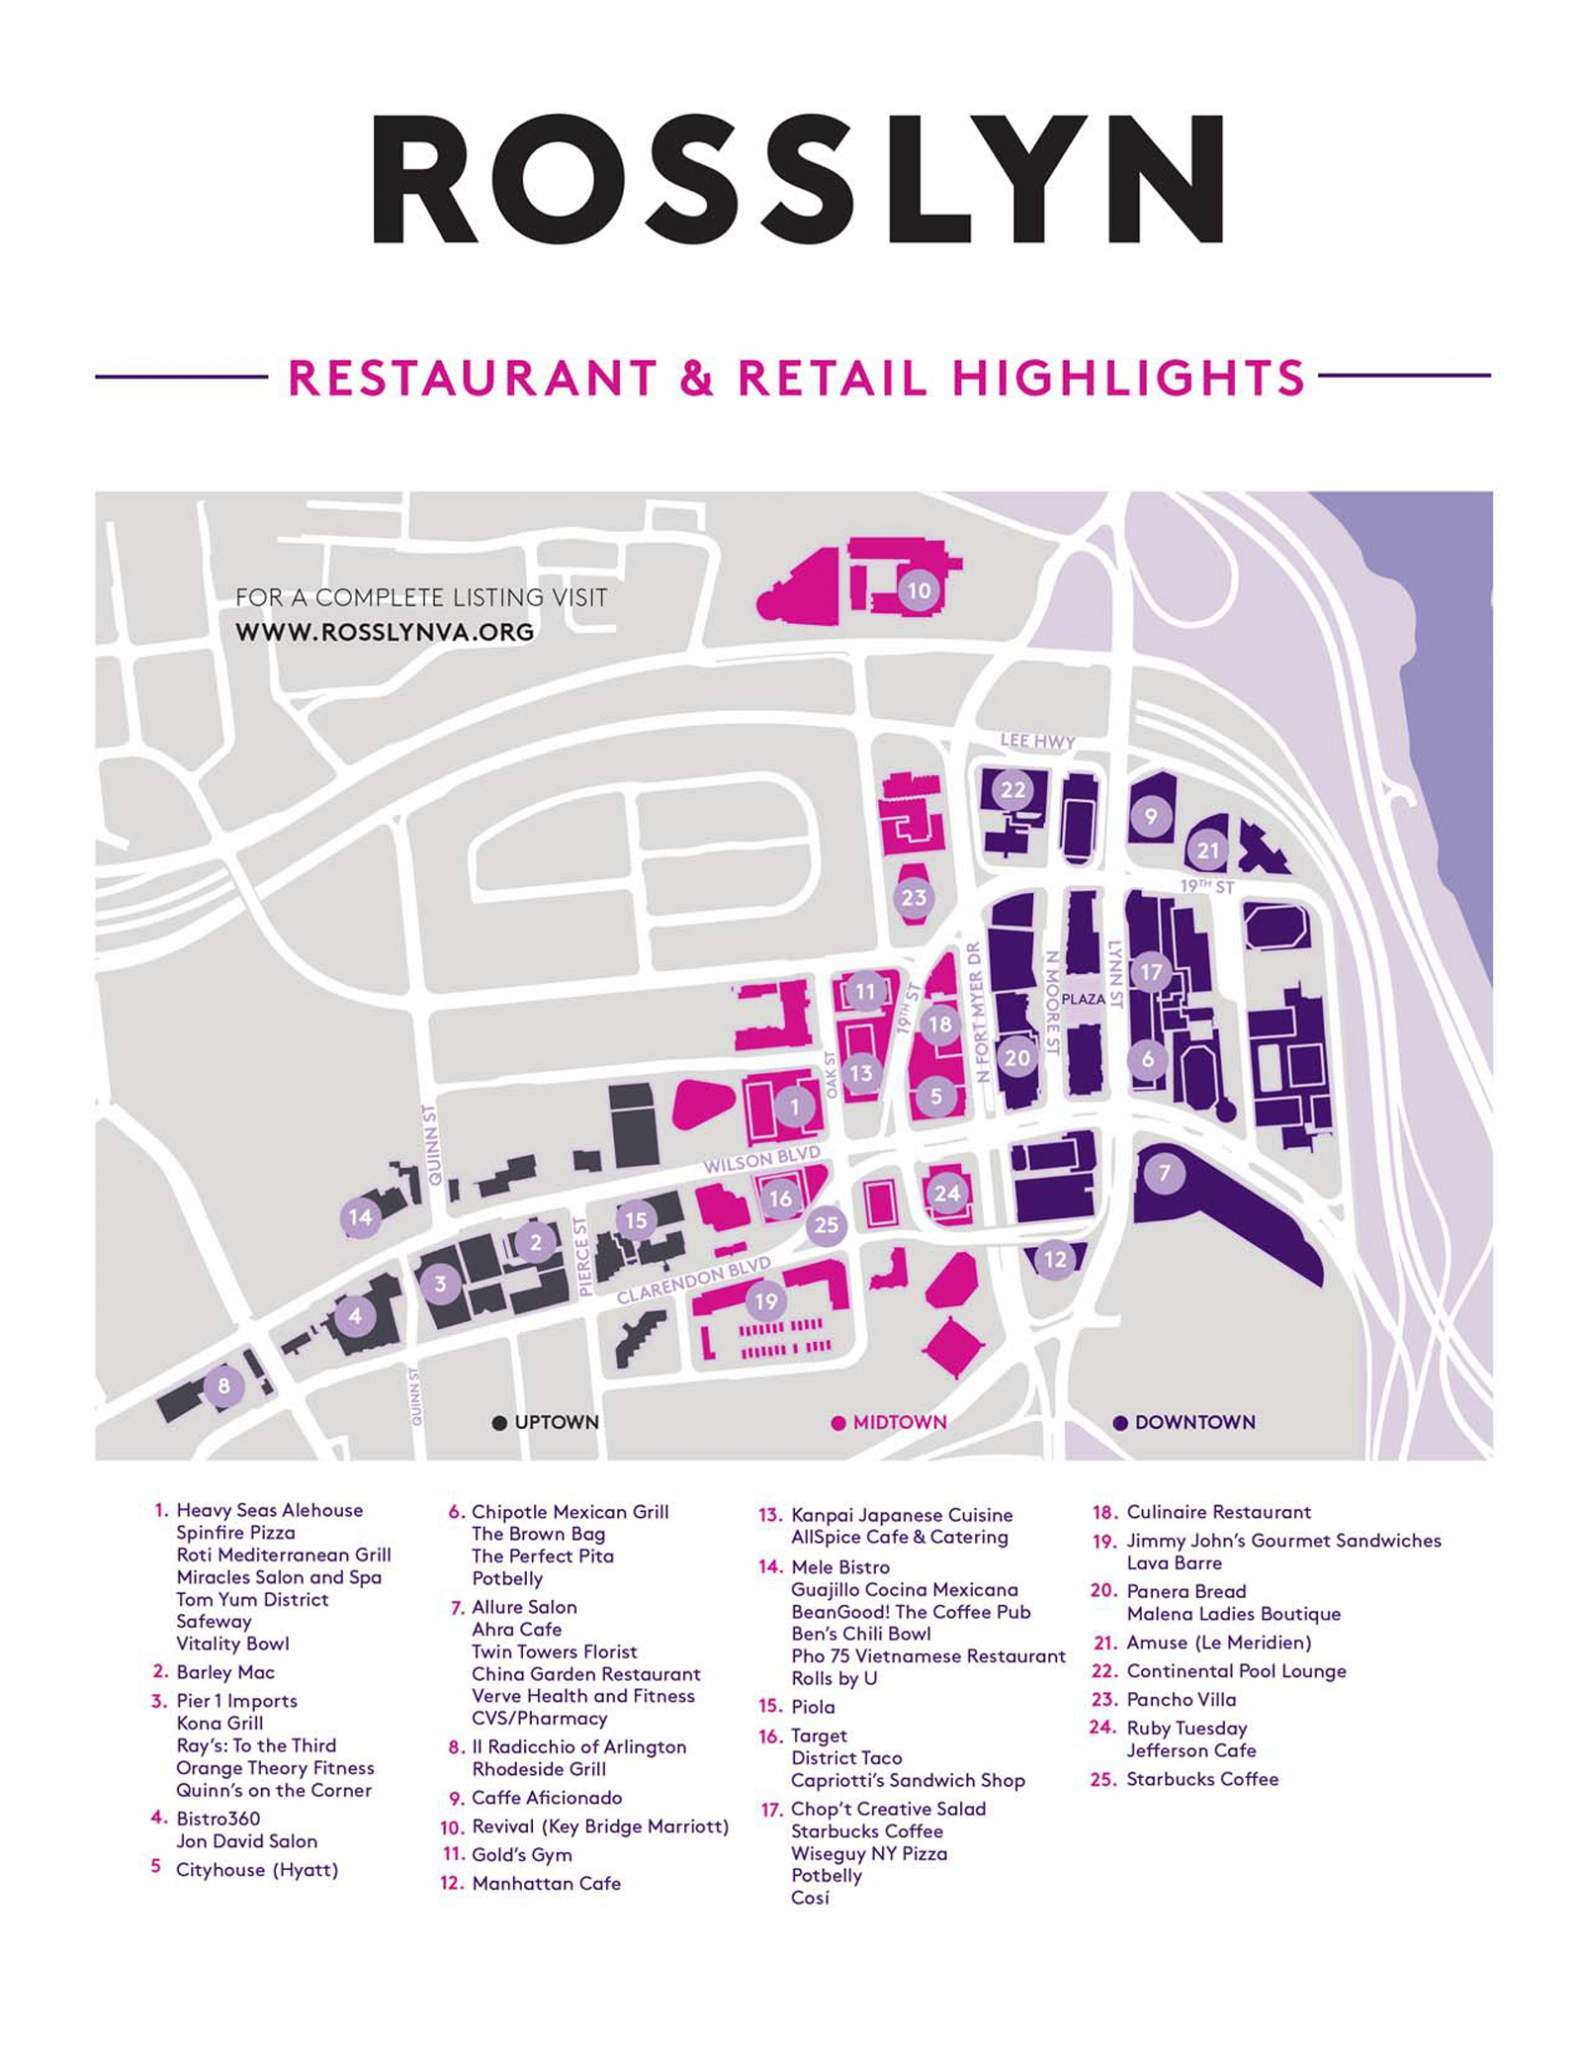 rosslyn---restaurant-and-retail-highlights.pdf